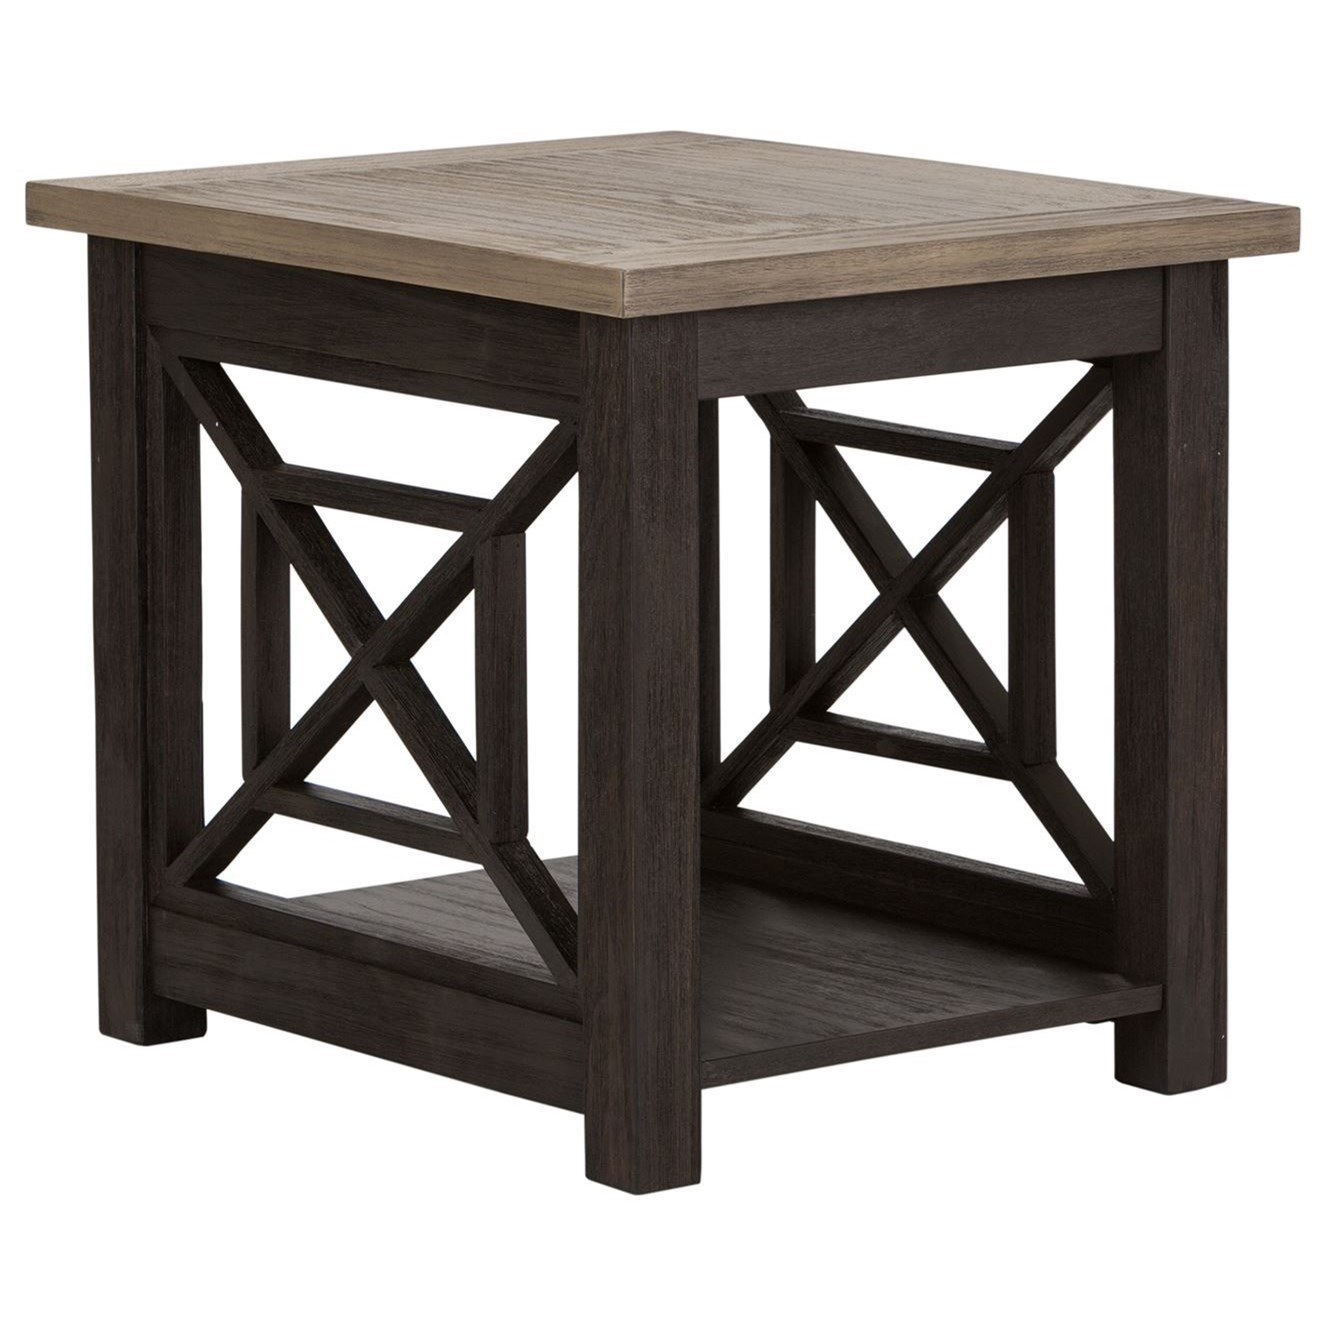 Transitional End Table with Bottom Shelf